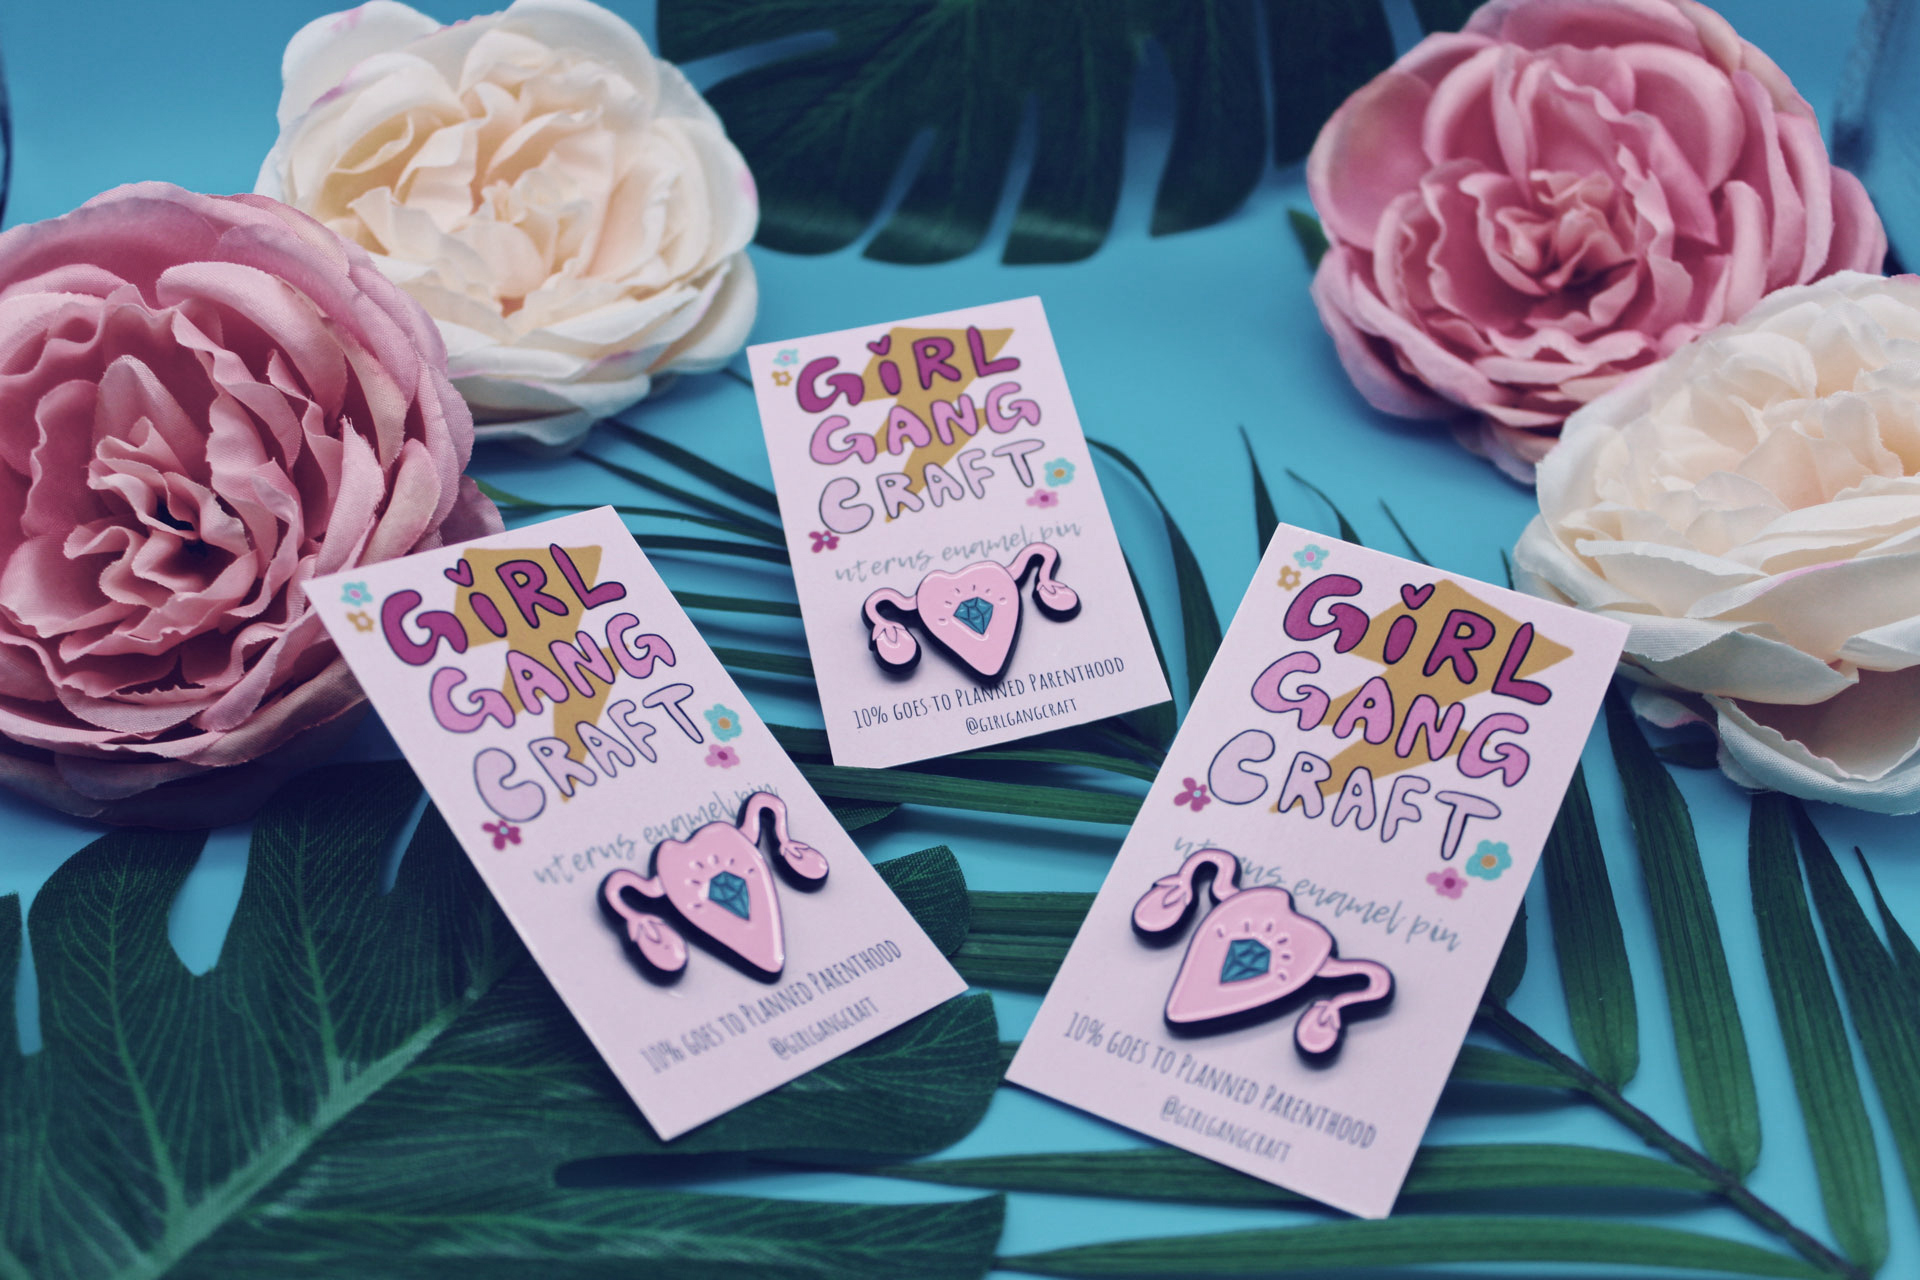 2. GIRL GANG CRAFT LOS ANGELES HOLIDAY MARKET - la | NOVEMBER 9+10a free event in Grand Central Market in Downtown Los Angeles. GGC is Looking for Artists + Designers + Brands + Healers. APPLY NOW